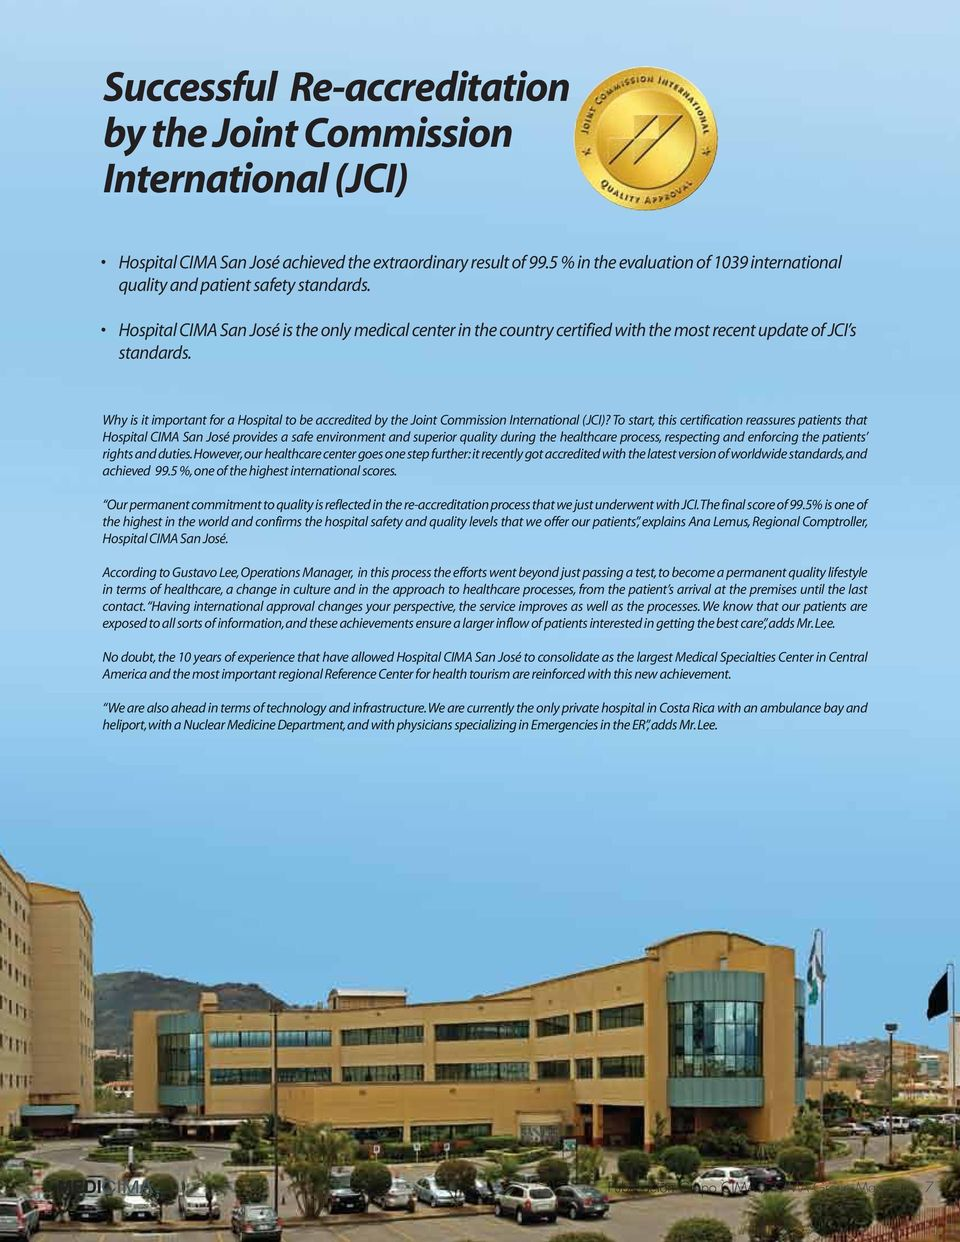 Hospital CIMA San José is the only medical center in the country certified with the most recent update of JCI s standards.